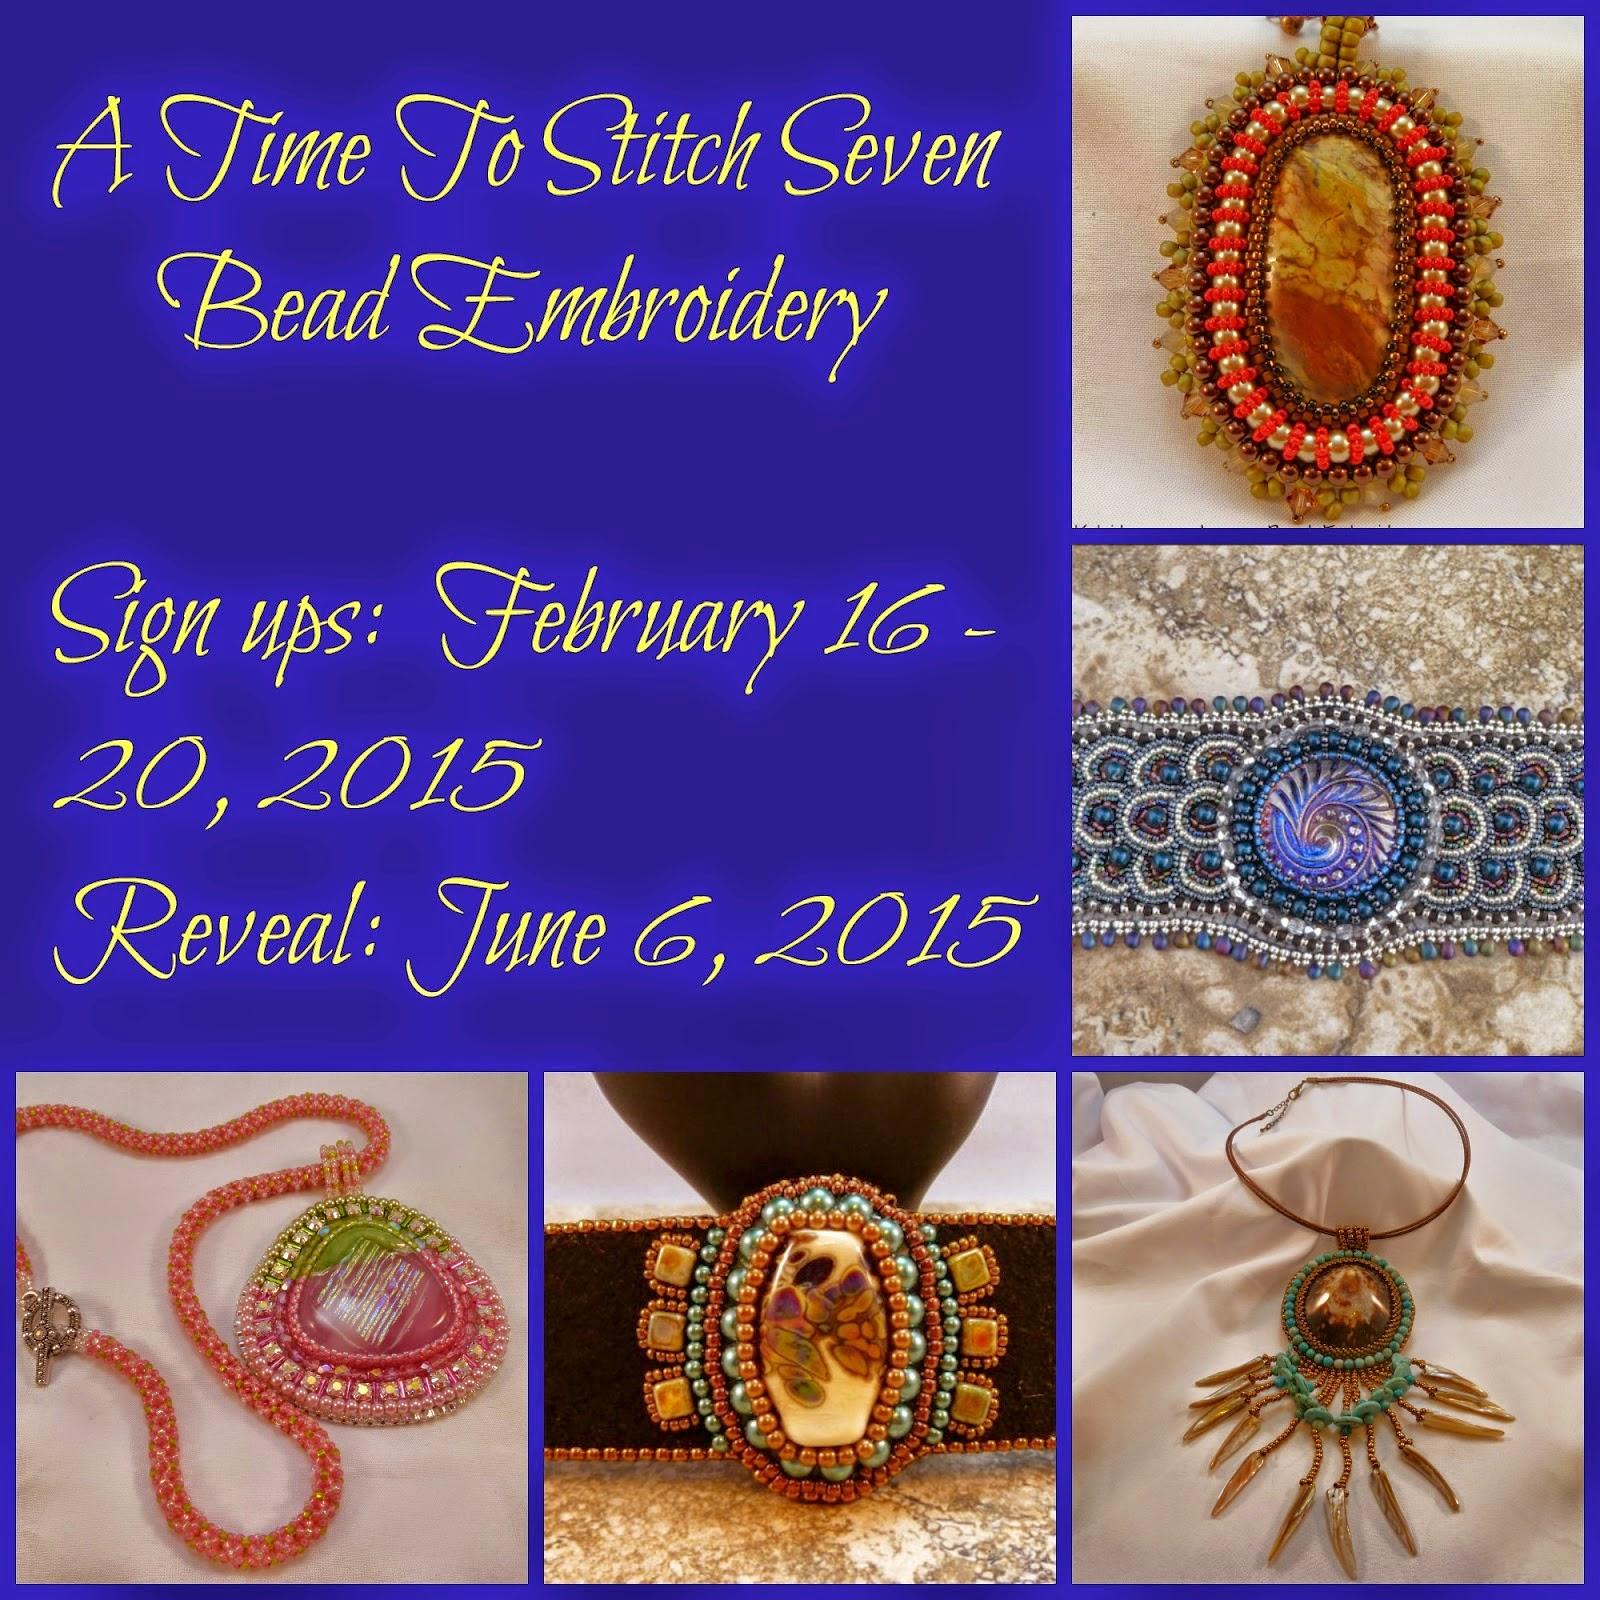 A Time to Stich Seven - Bead Embroidery